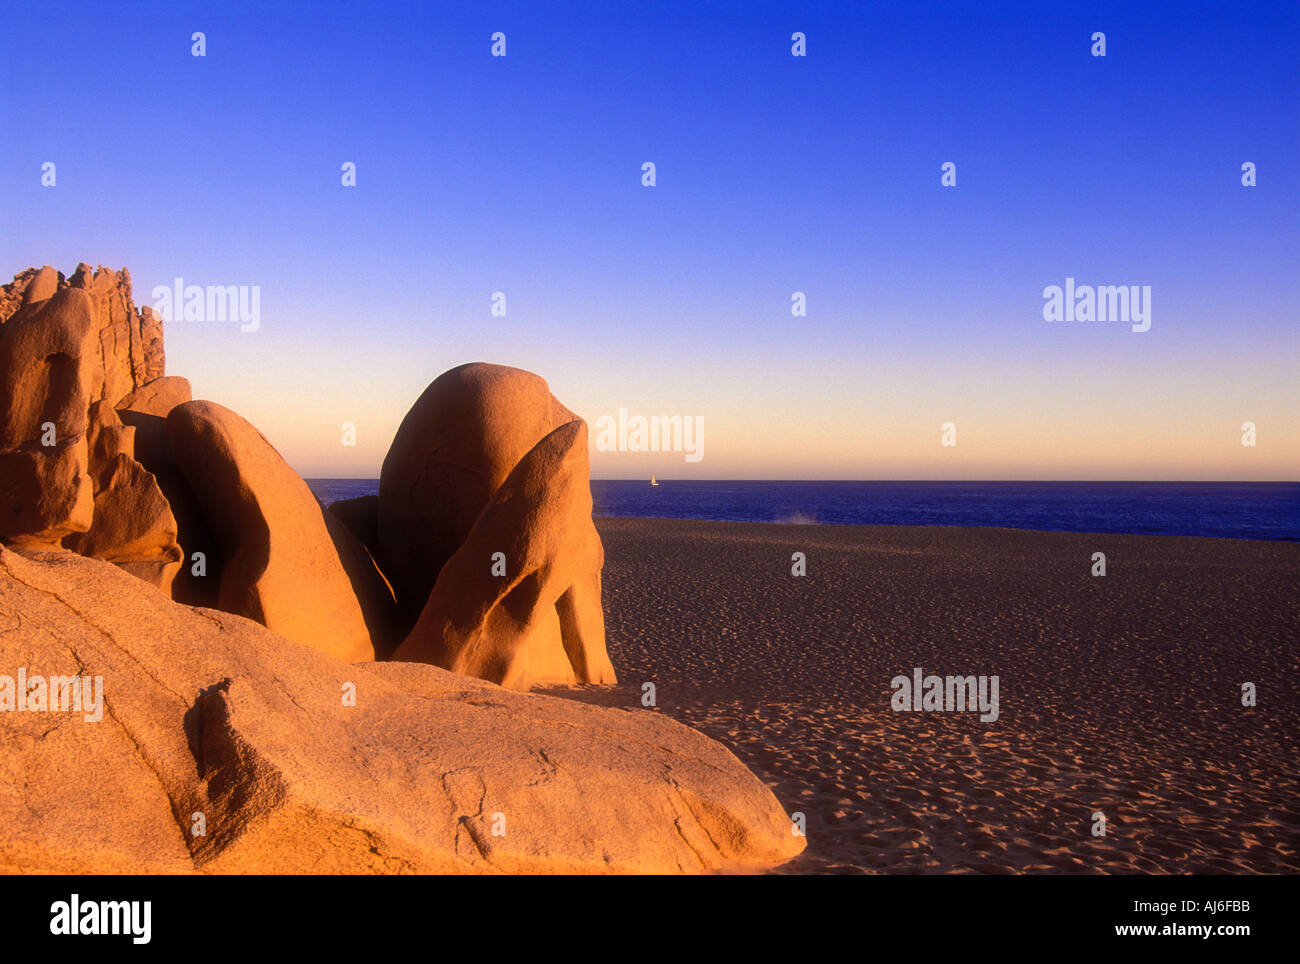 Rocks on beach with Pacific Ocean in background in Cabo san Lucas